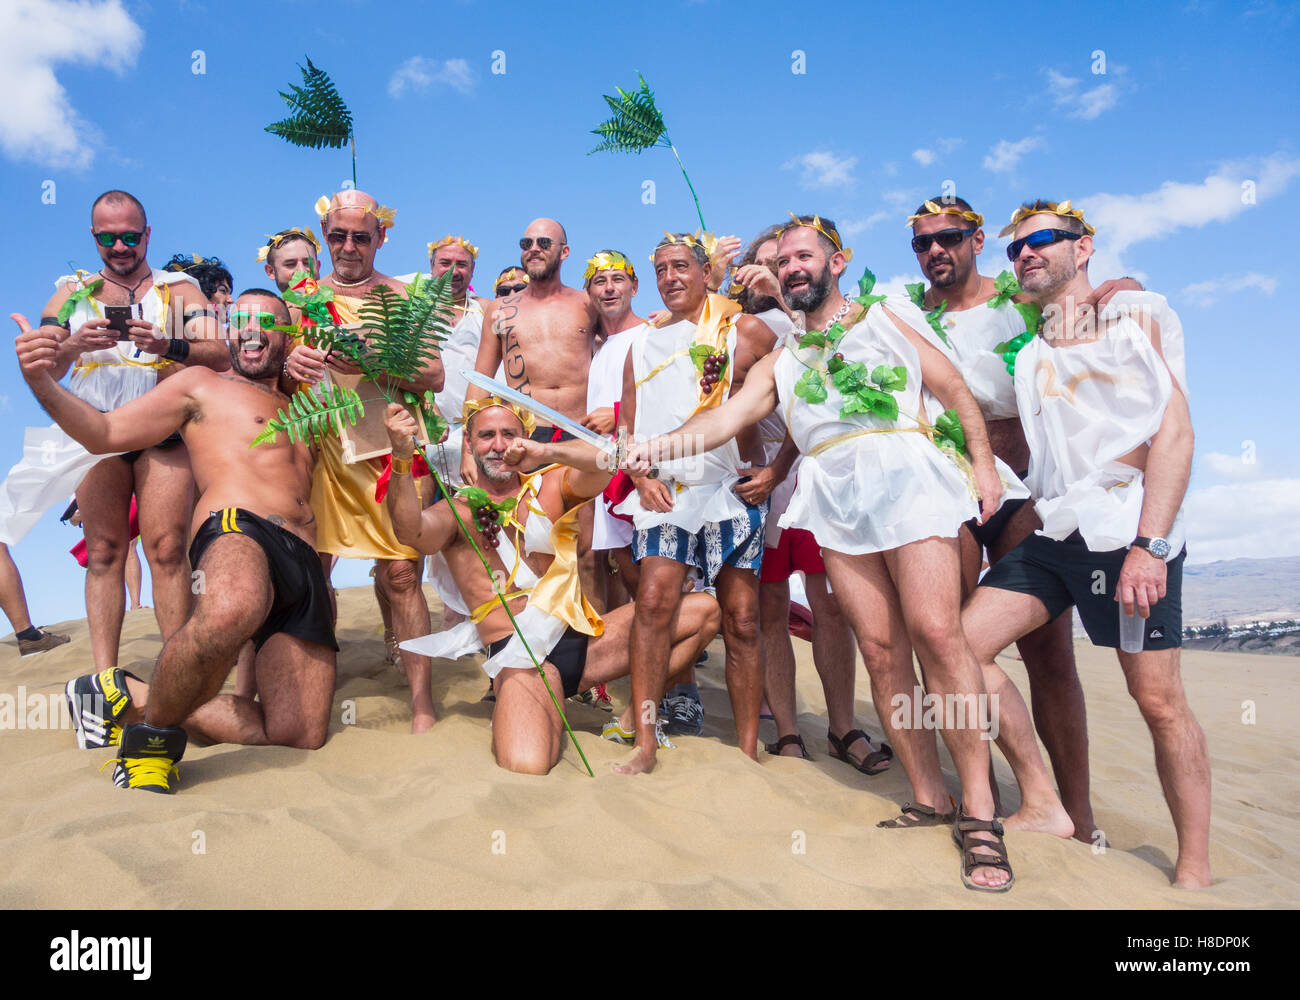 Cute Nudist holidays gran canaria the